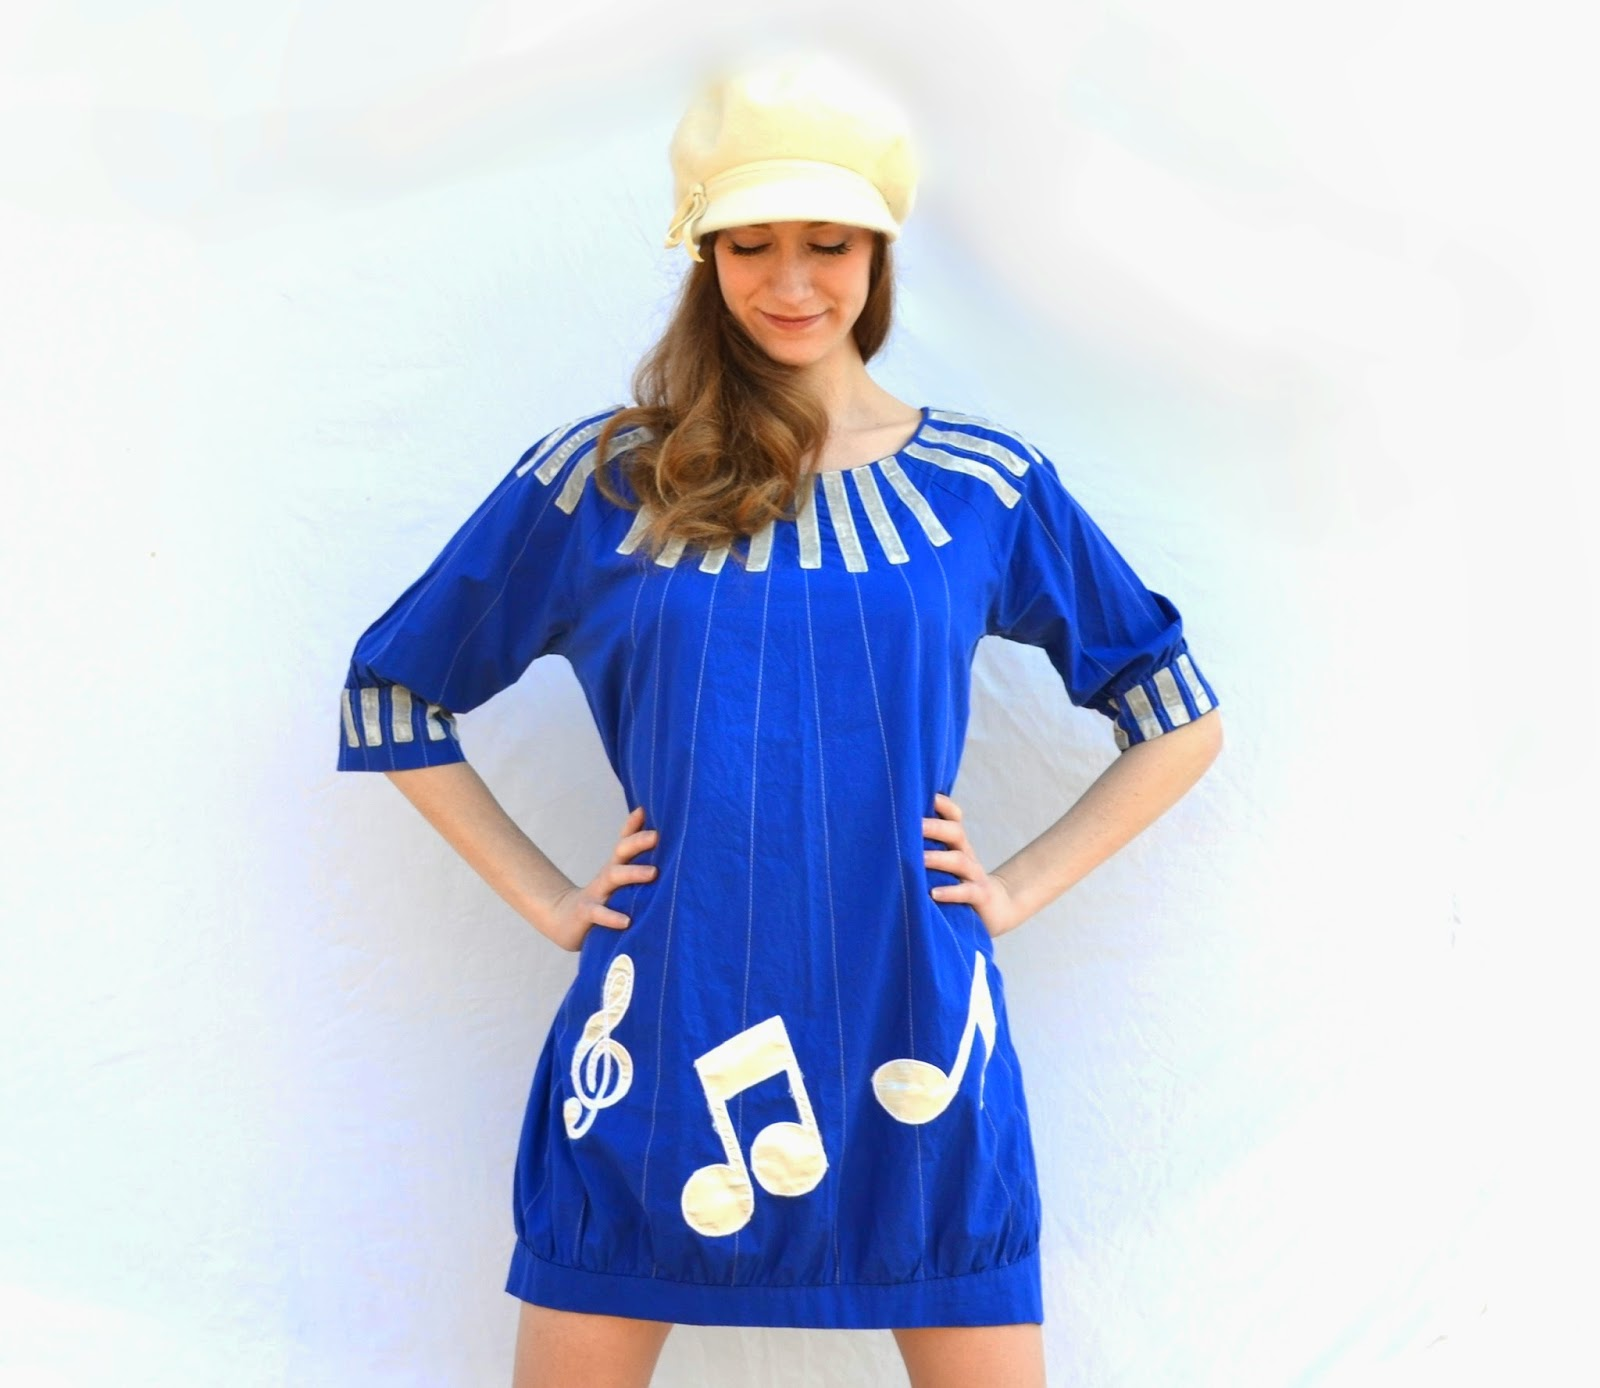 https://www.etsy.com/listing/182090553/1960s-mod-music-note-mini-shift-sack?ref=shop_home_active_8